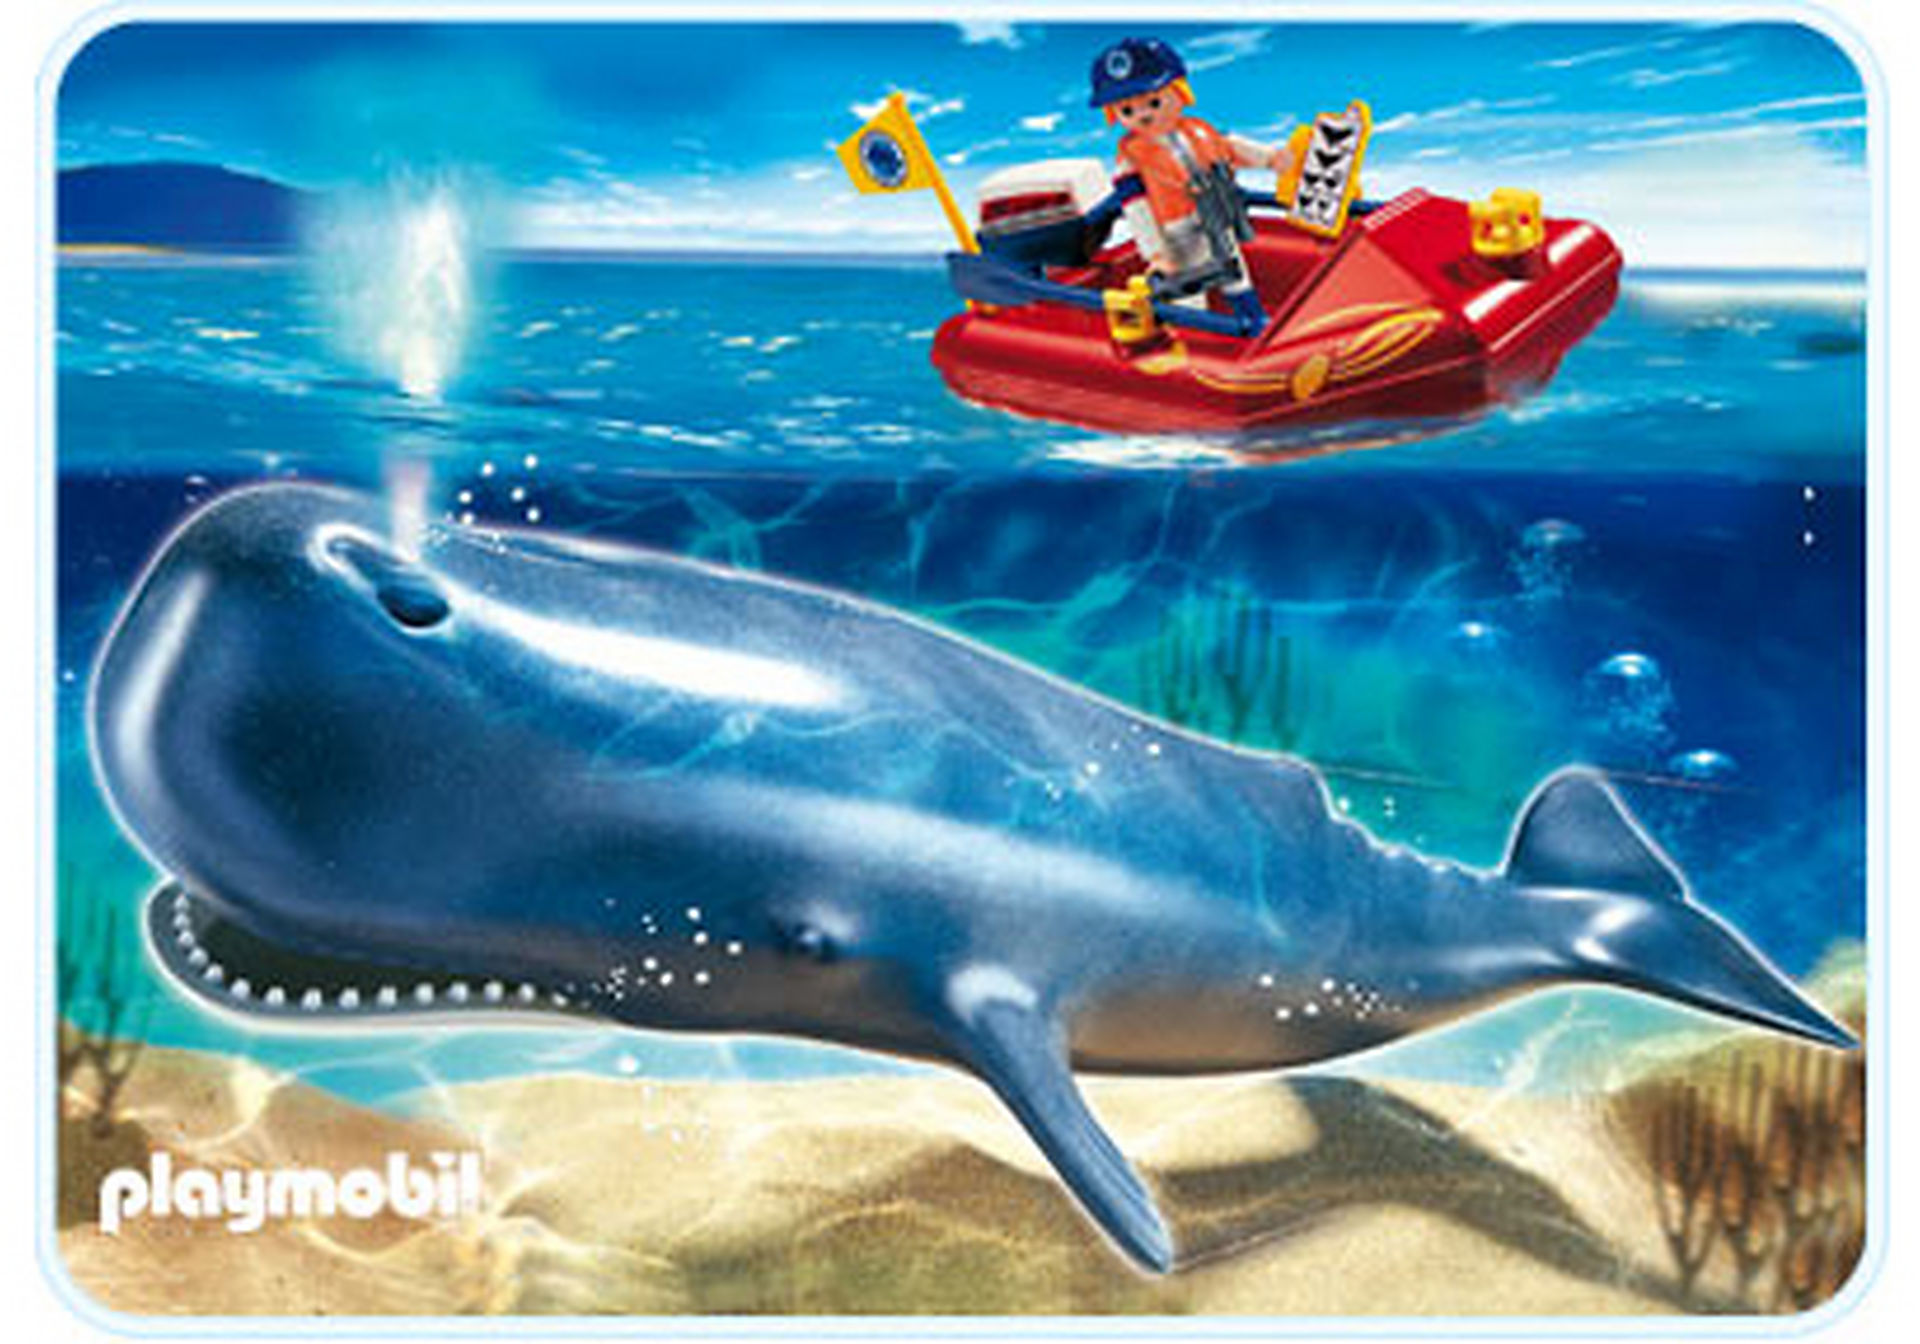 http://media.playmobil.com/i/playmobil/4489-A_product_detail/Forscher-Boot mit Pottwal